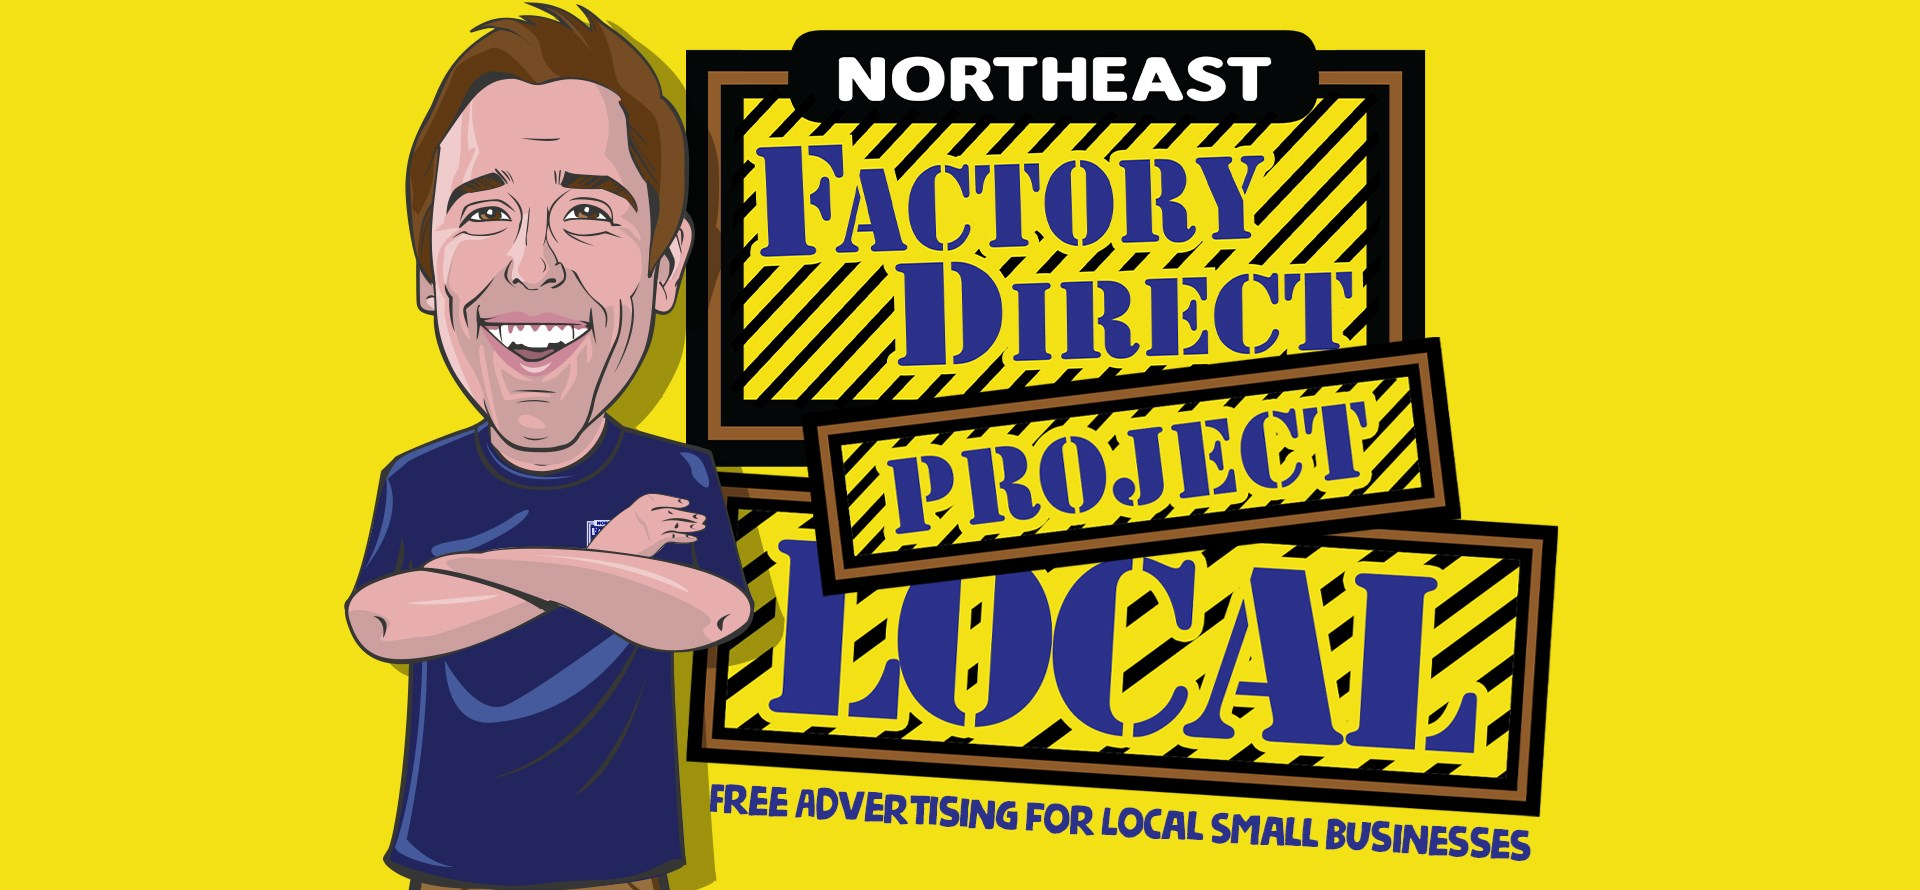 Project Local - click here to fill out the form so we can help you promote your small business